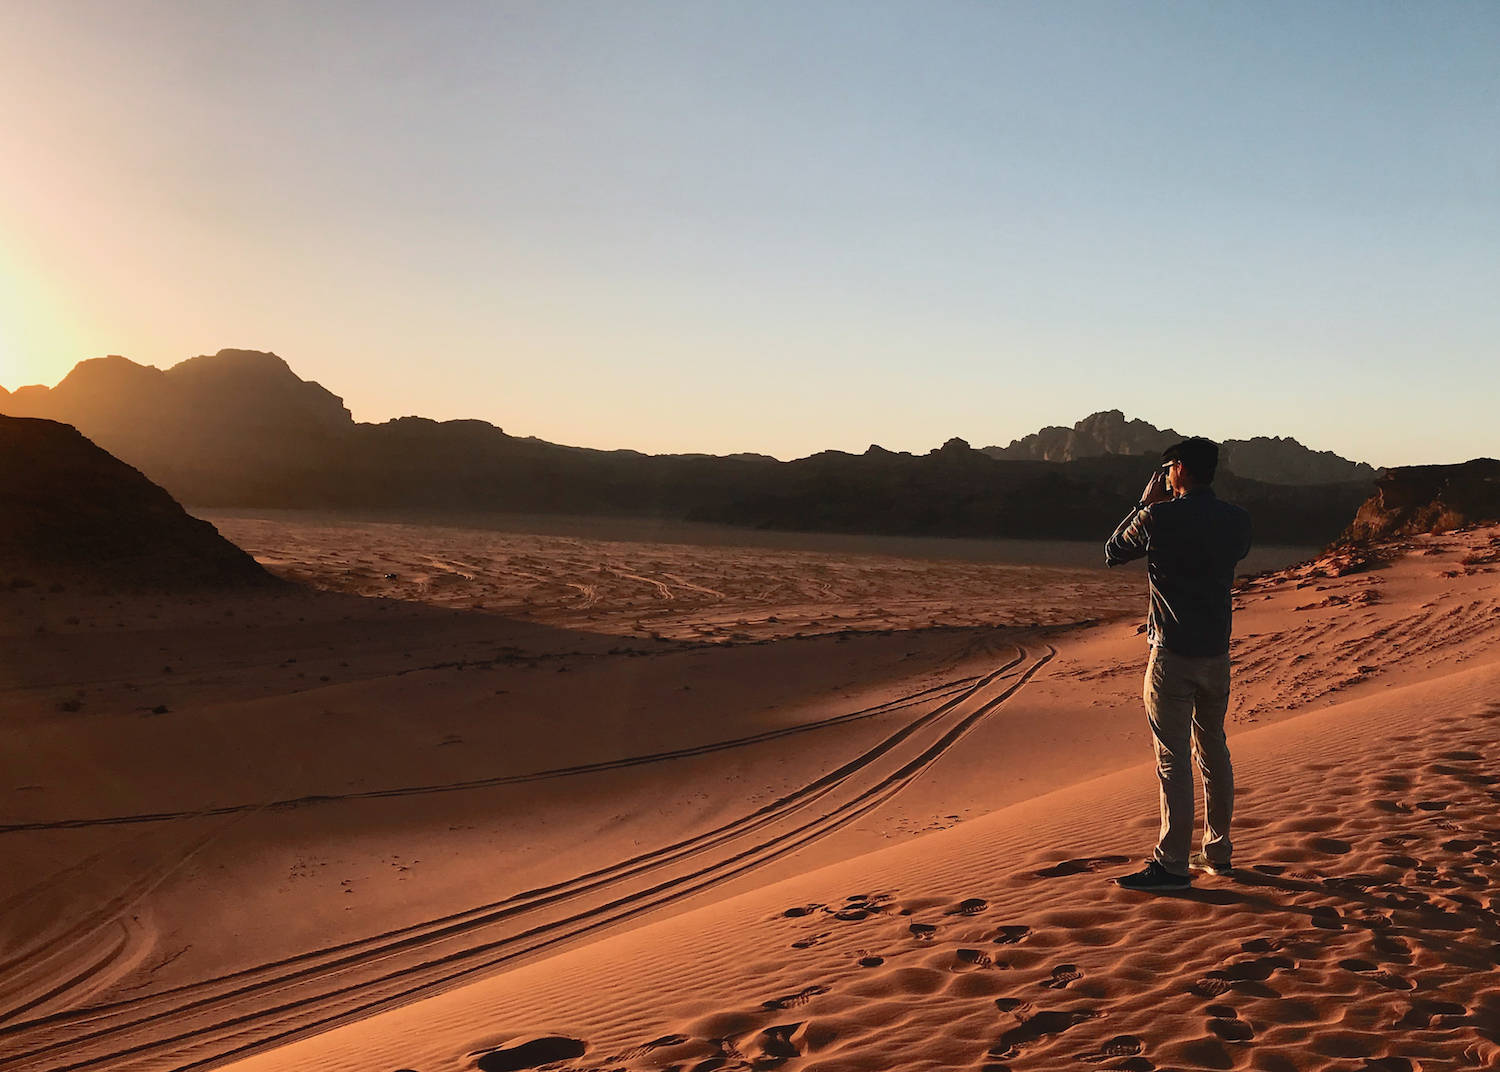 Sunset in Jordan's Wadi Rum desert - by Ben Holbrook from DriftwoodJournals.com.